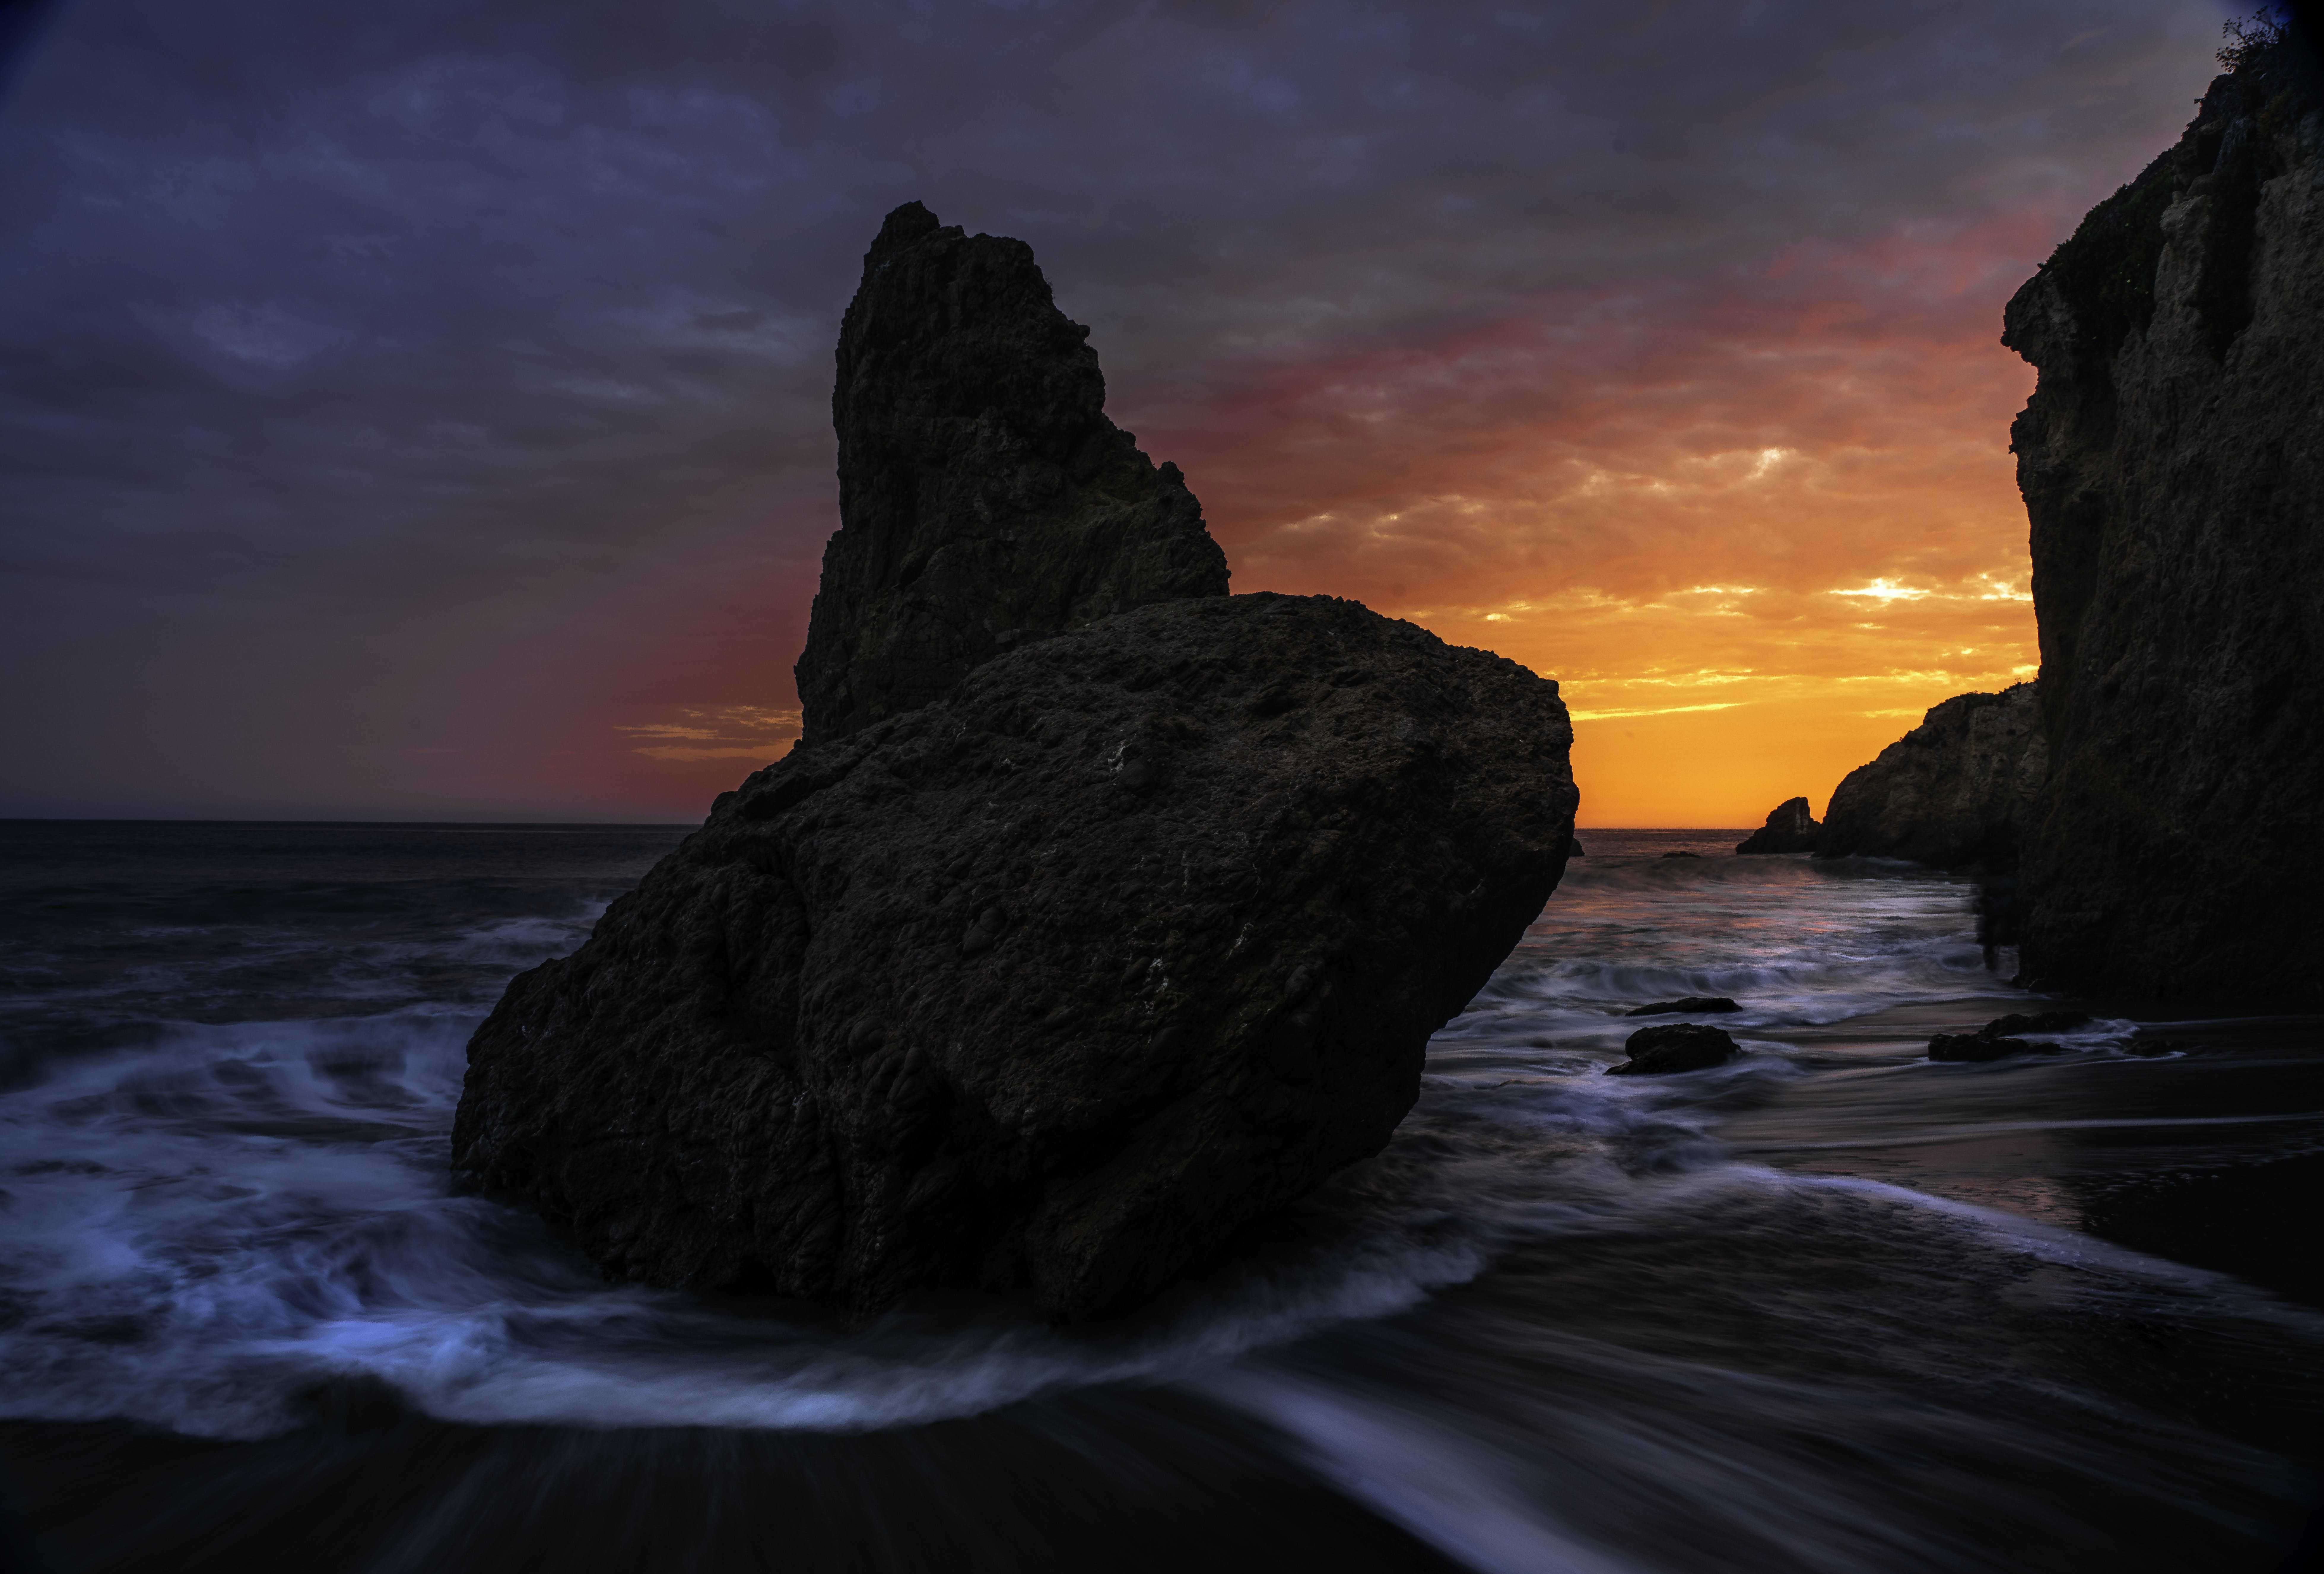 Time Lapse Photography of Brown Rock Monolith during Golden Hour